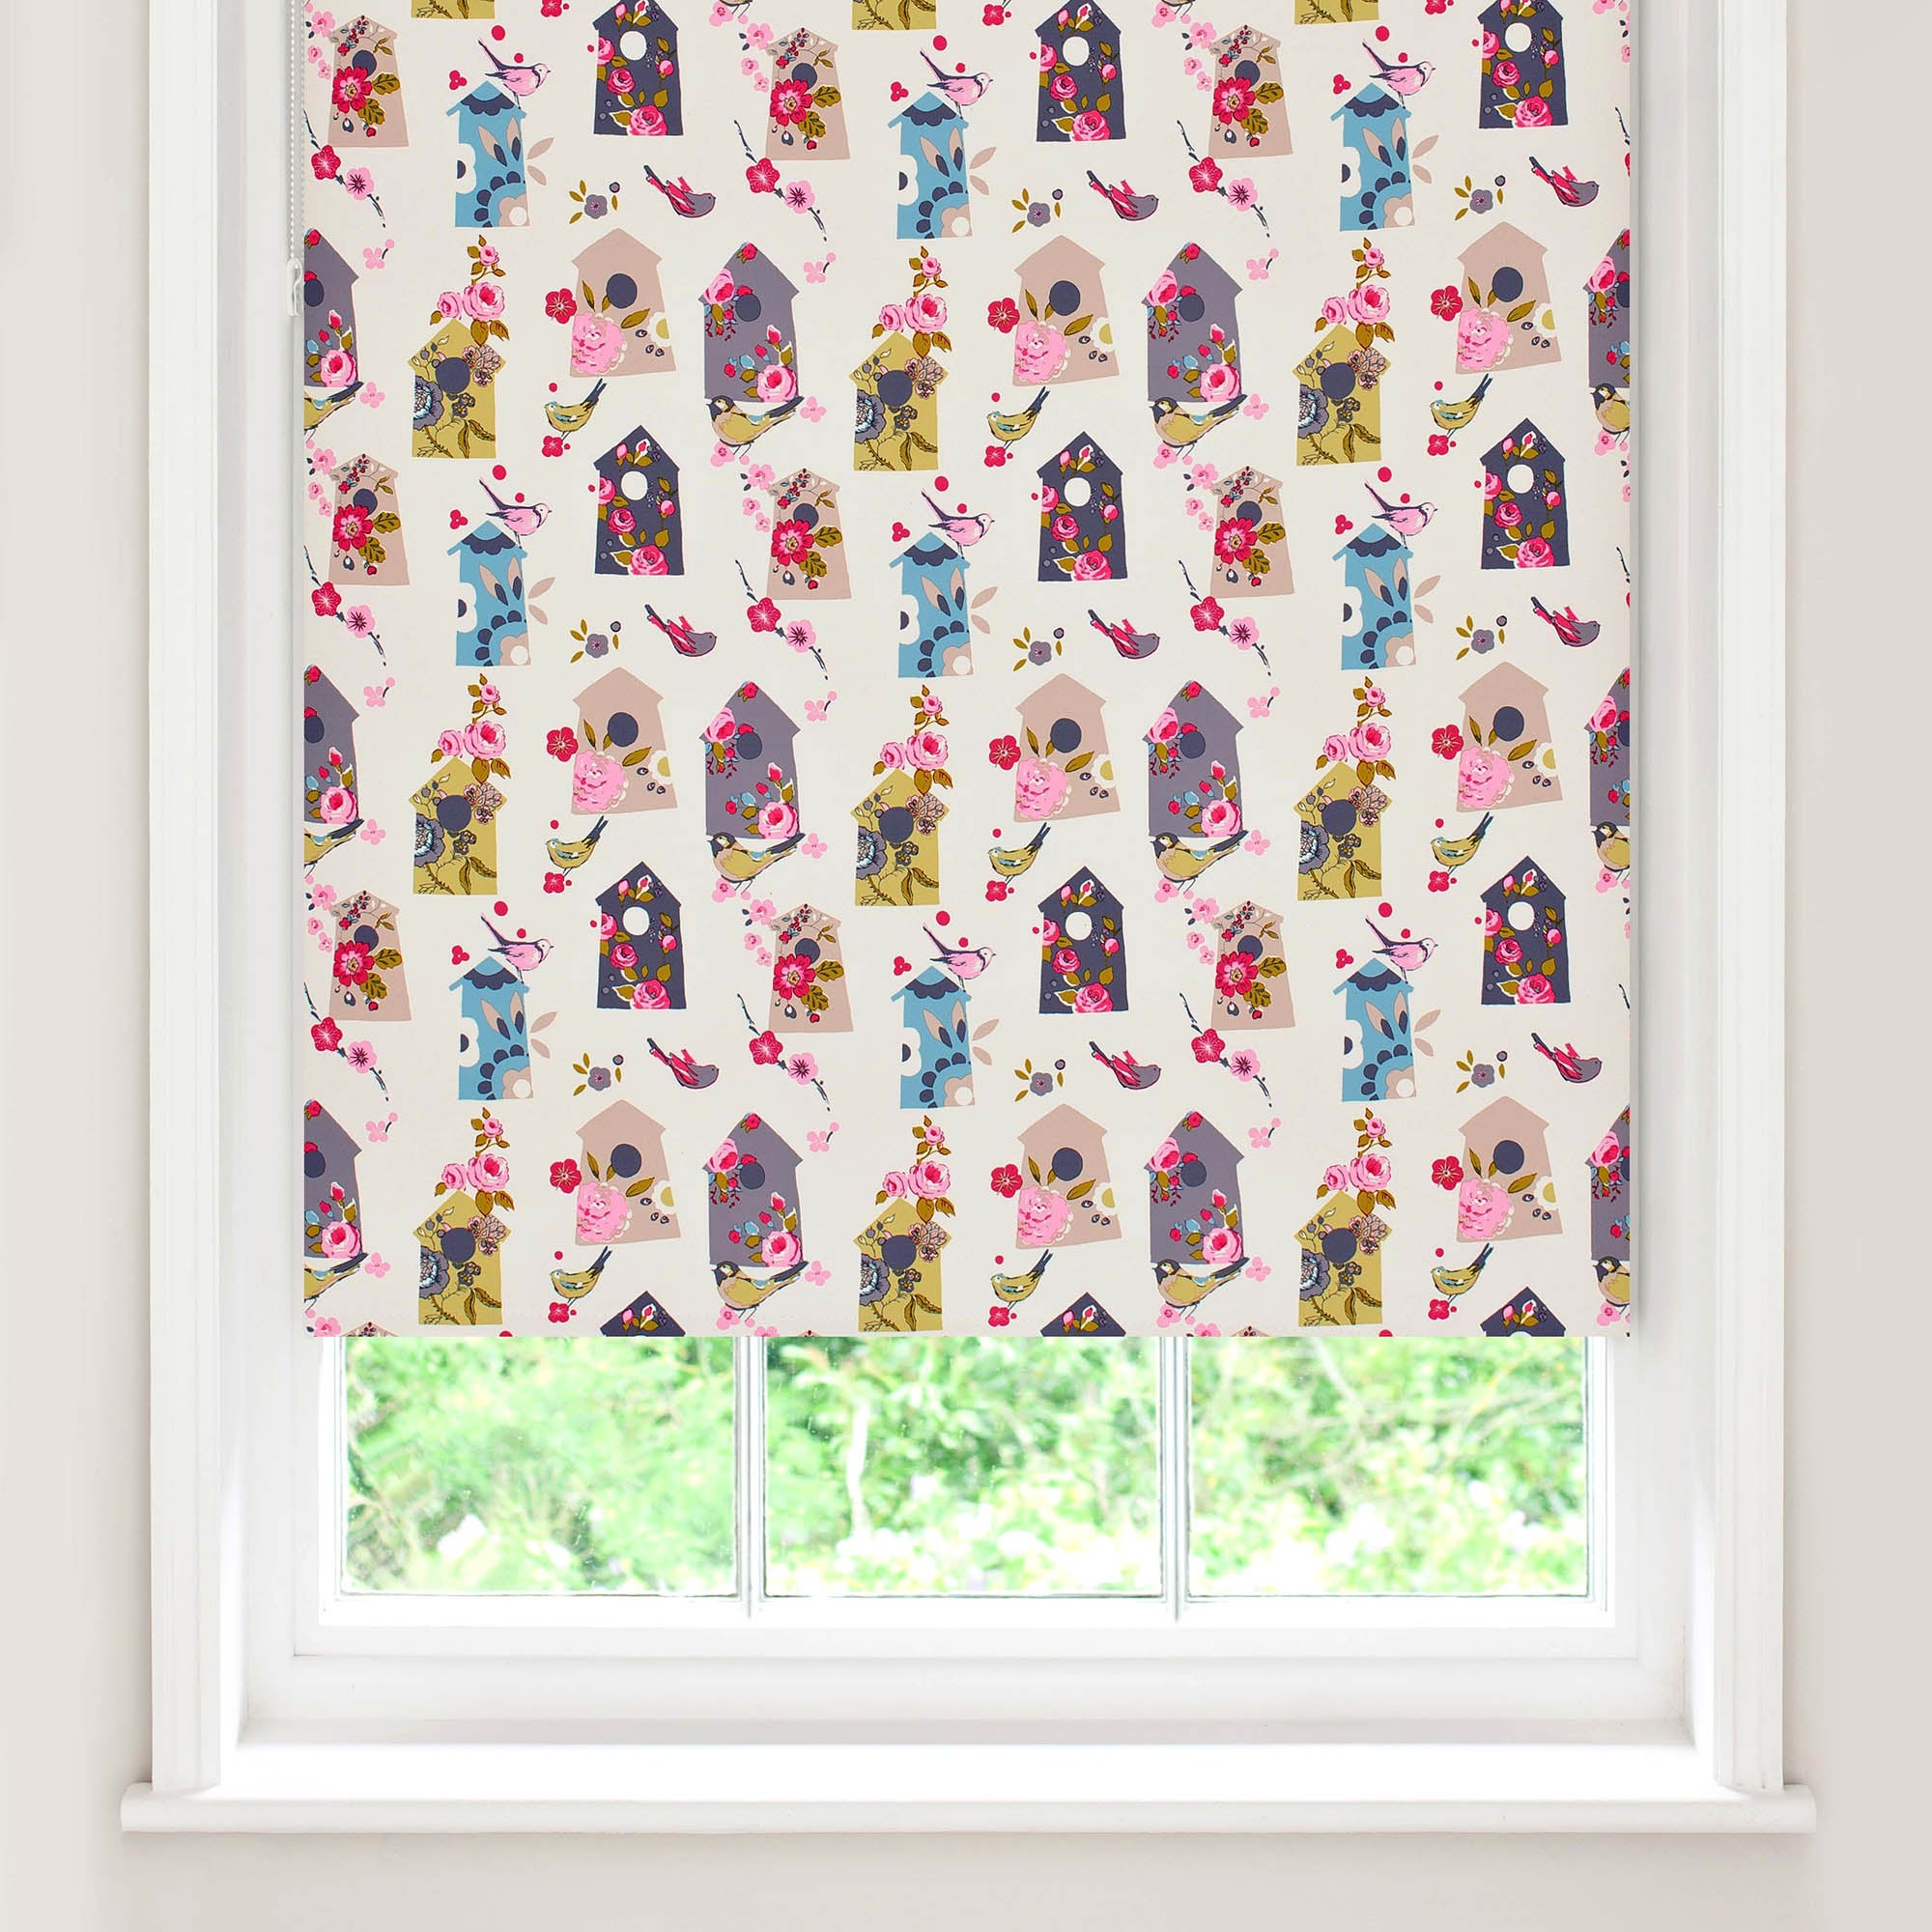 Birdhouse Blackout Roller Blind